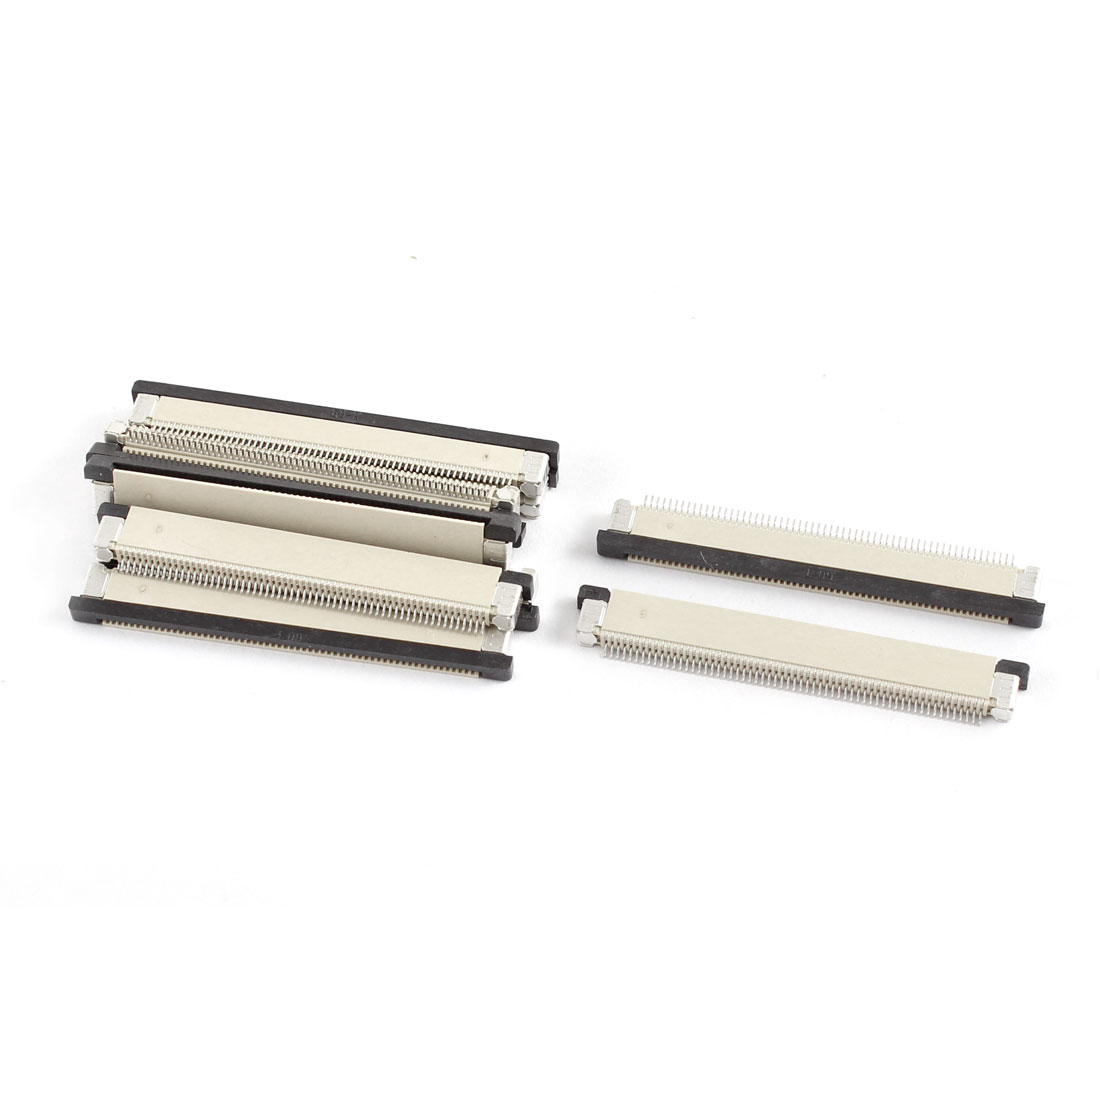 10Pcs Bottom Port 60Pin 0.5mm Pitch FFC FPC Ribbon Sockets Connector - image 1 of 1